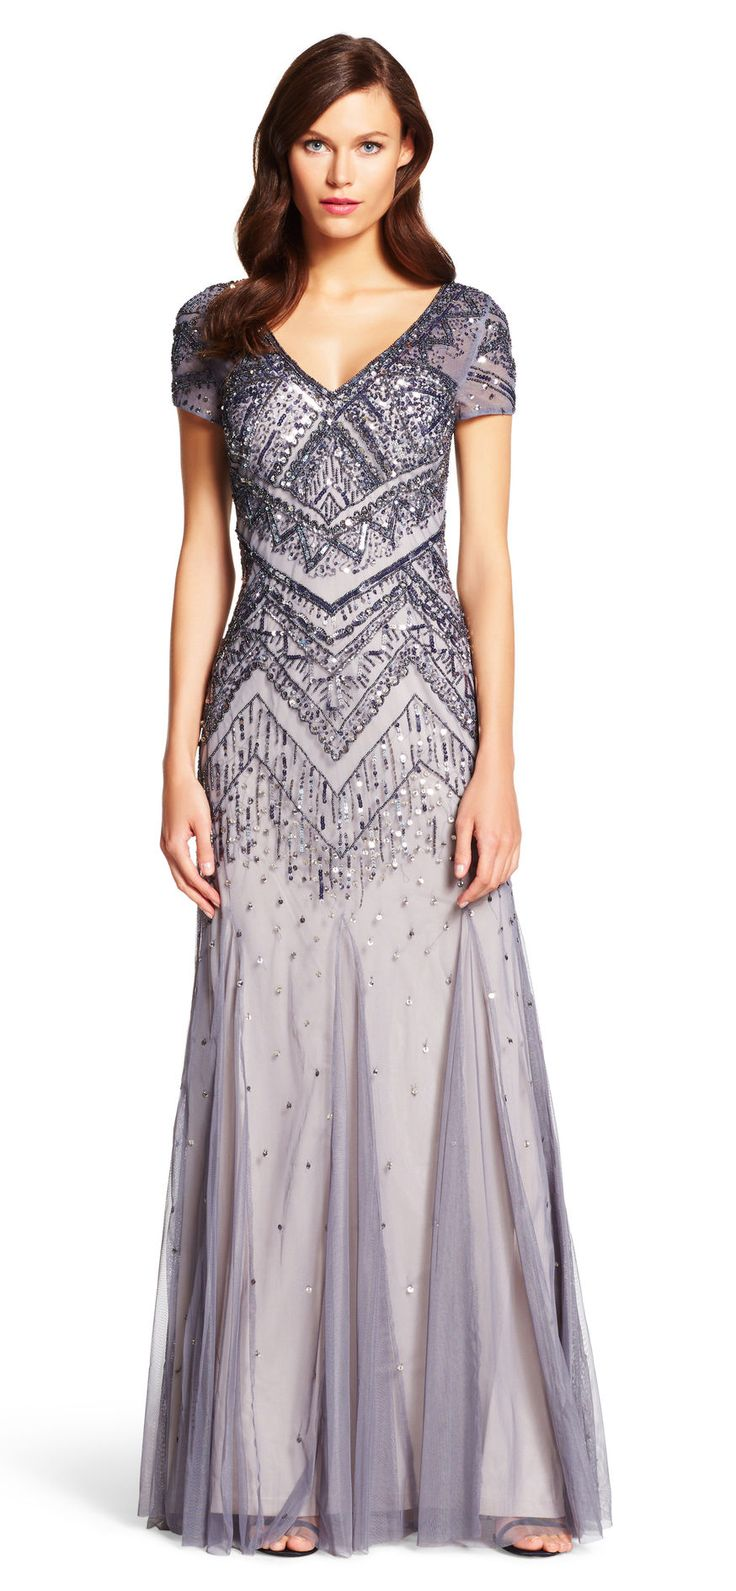 Beaded Mesh Mermaid Gown - Adrianna Papell